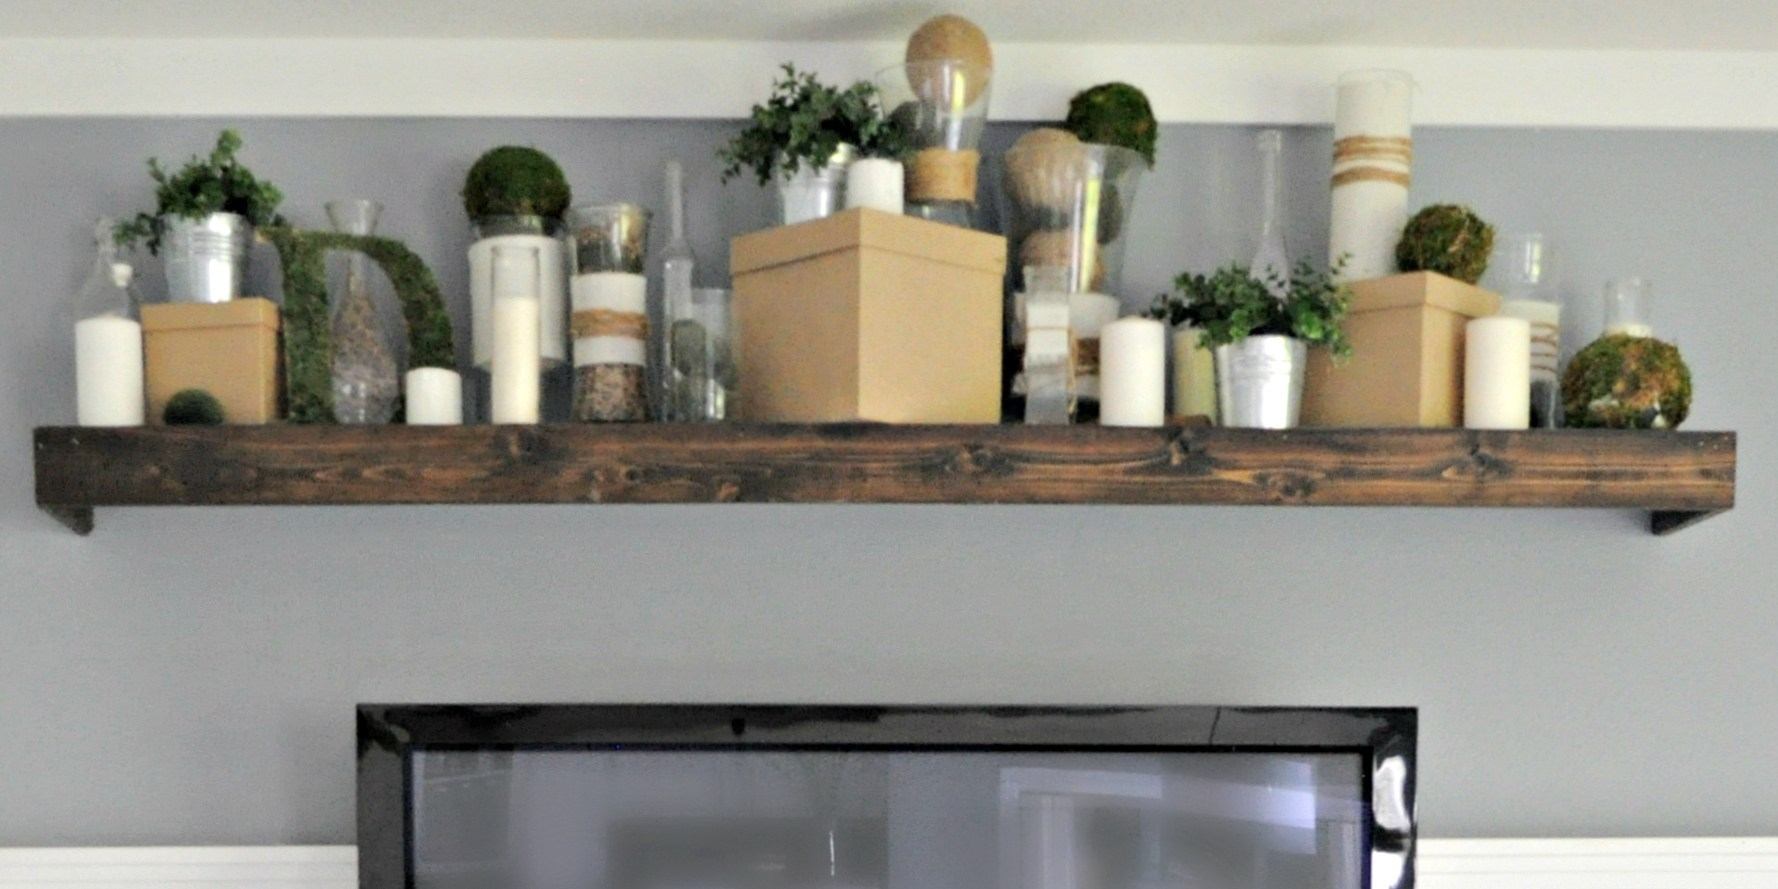 remodelaholic turn ikea shelf into pottery barn ledge floating brackets shoe hanging ideas inch corner single cube kitchen wall cabinet height deep fireplace mantel legs threshold